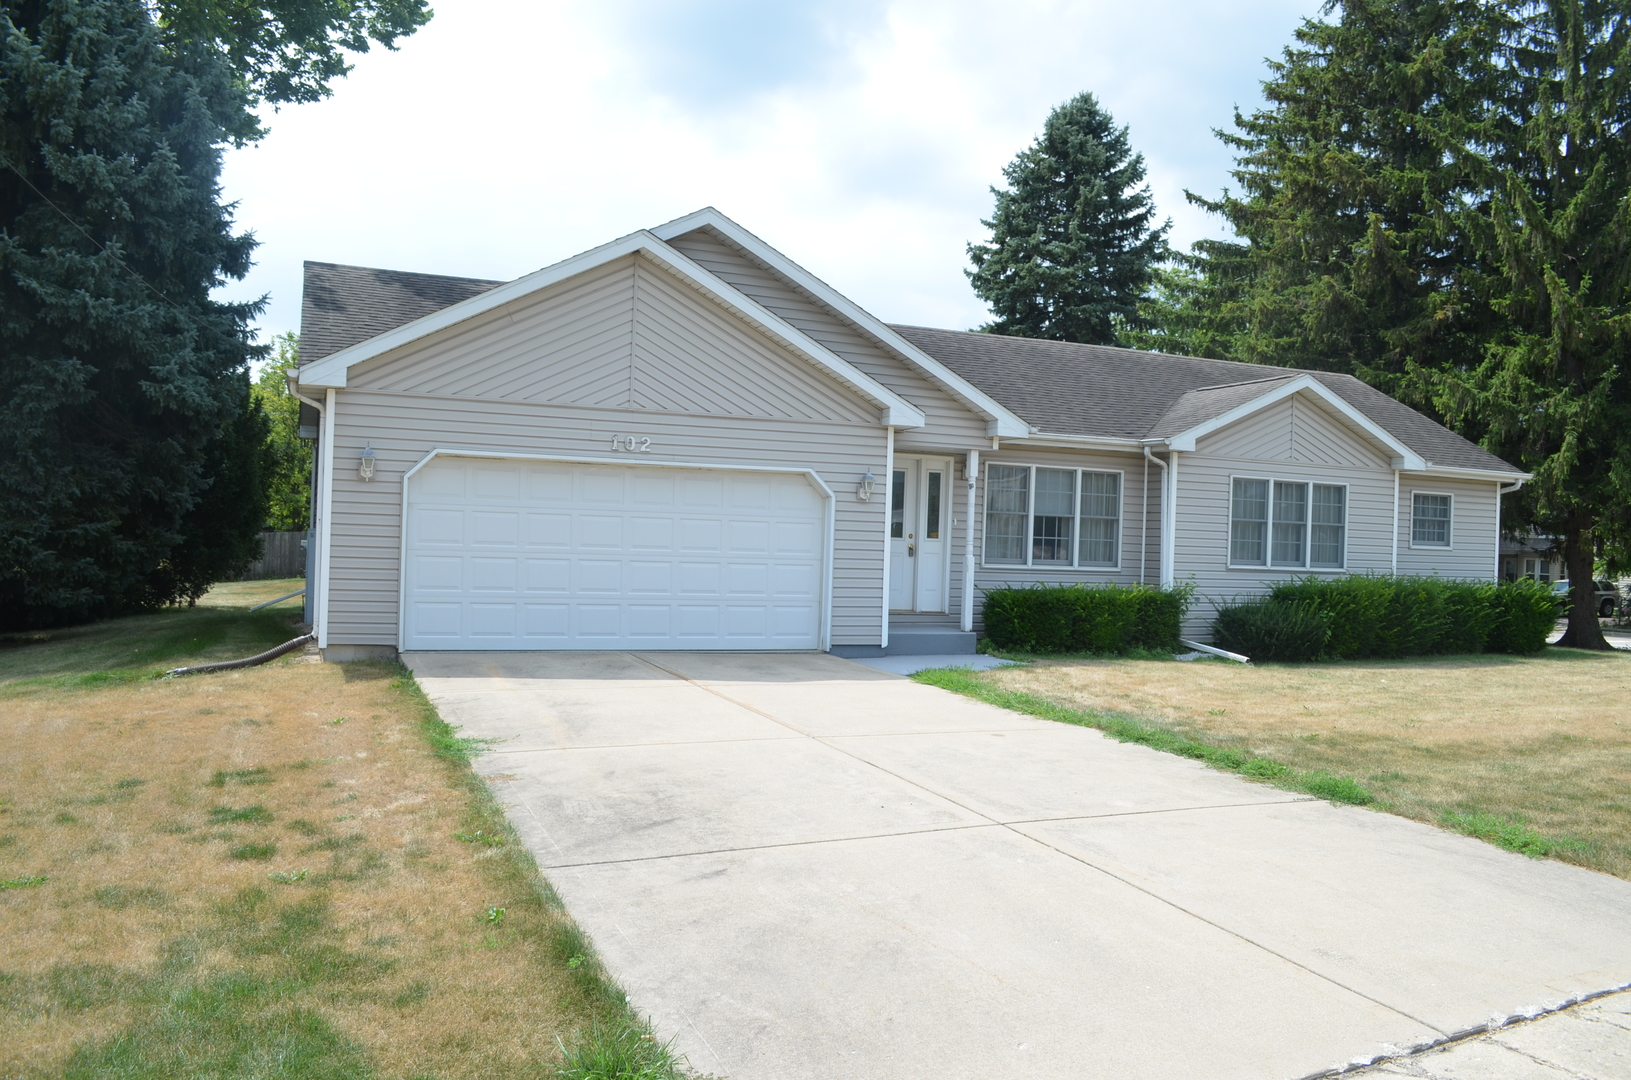 chisago city middle eastern singles For sale: 3 bed, 1 bath ∙ 1152 sq ft ∙ 35530 park trl, chisago lake twp, mn 55012 ∙ $100,000 ∙ mls# 4866007 ∙ handyman special great lot, home needs a lot of updating throughout.